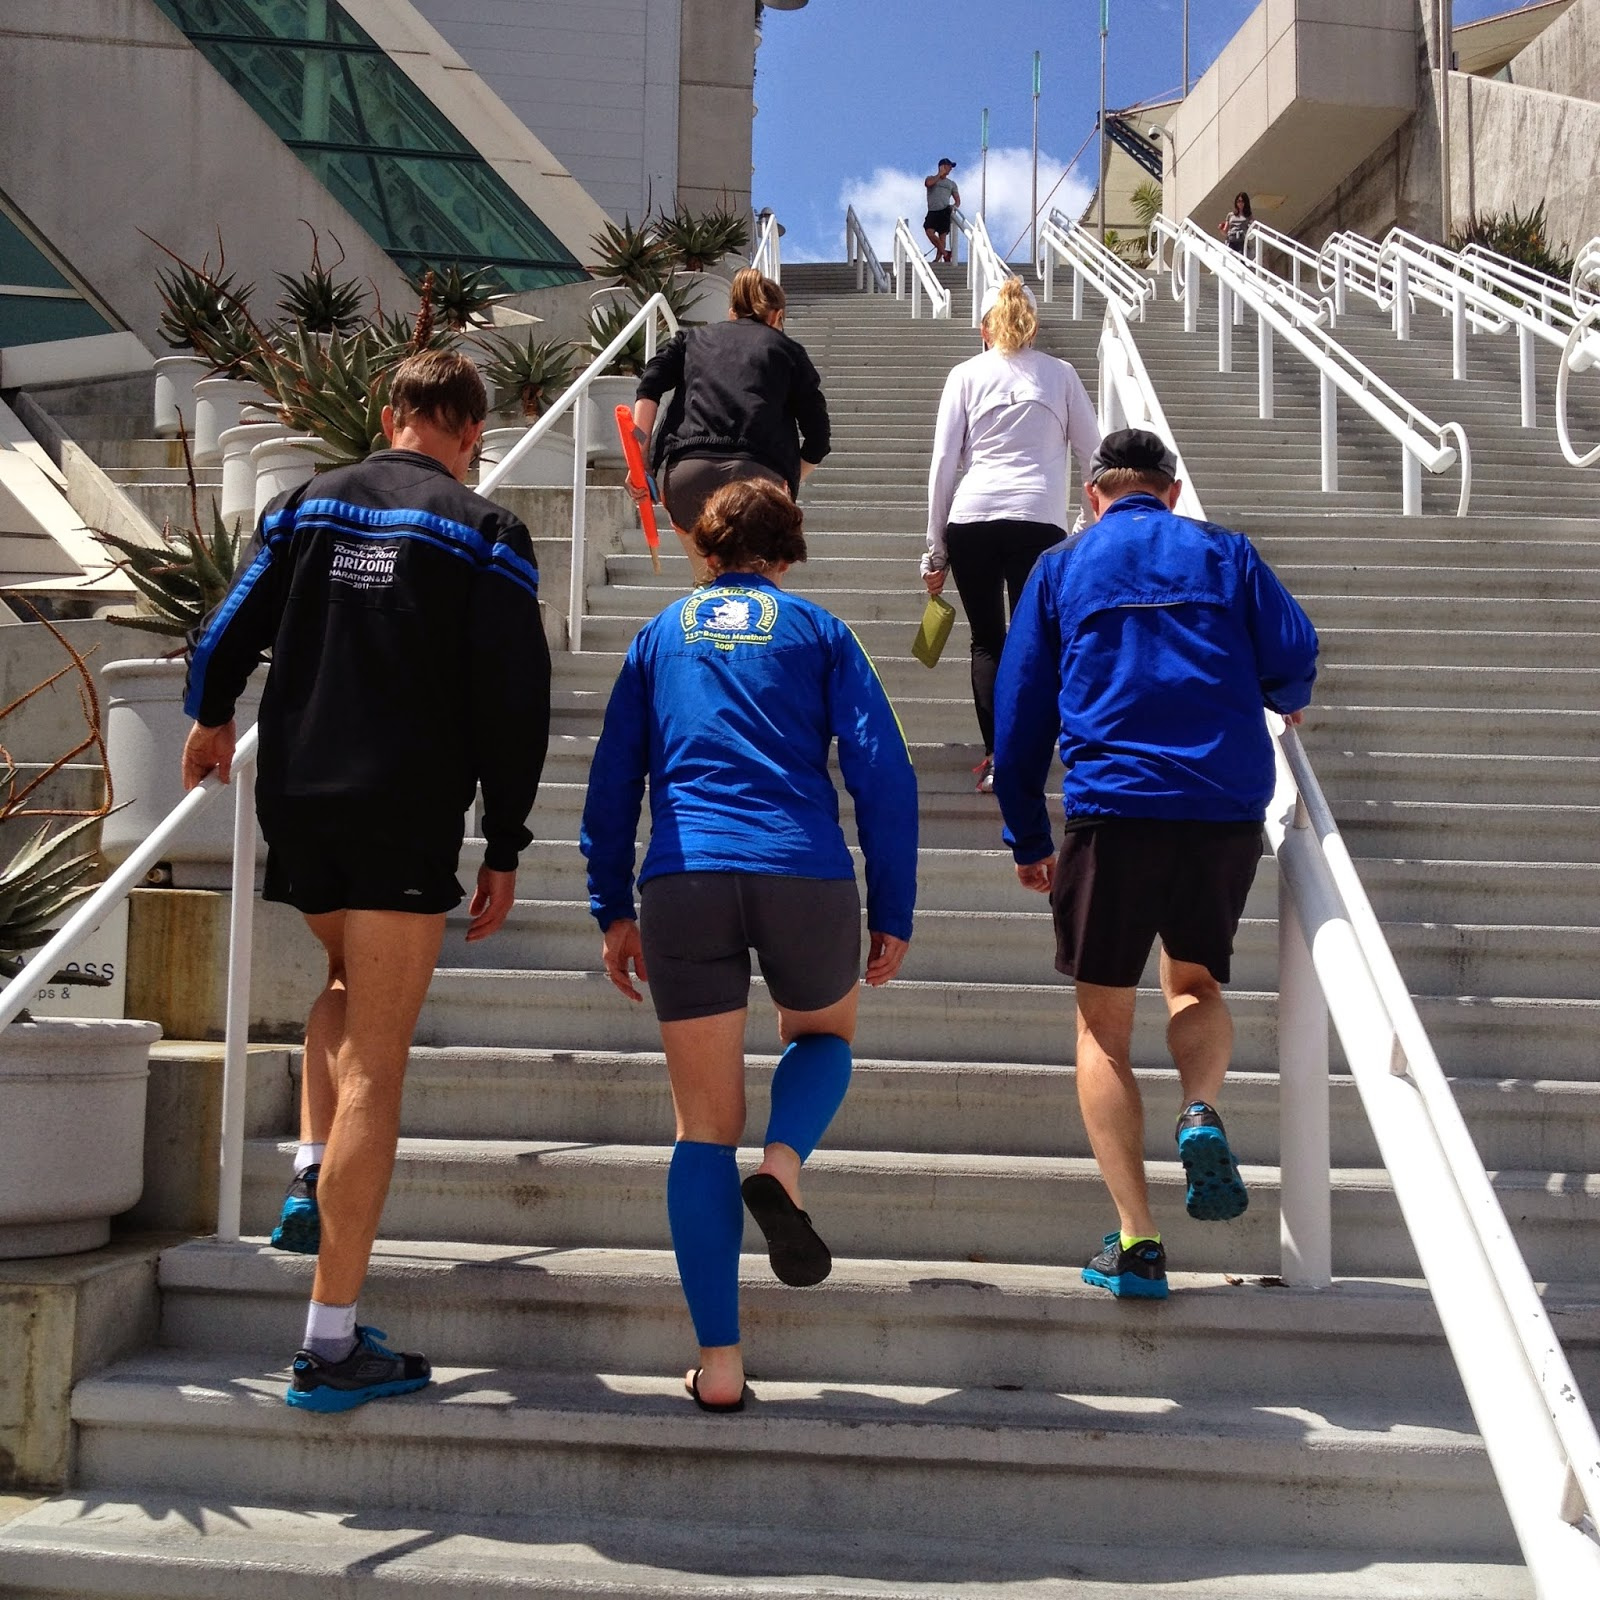 we also decided some stairs cross-training was in order